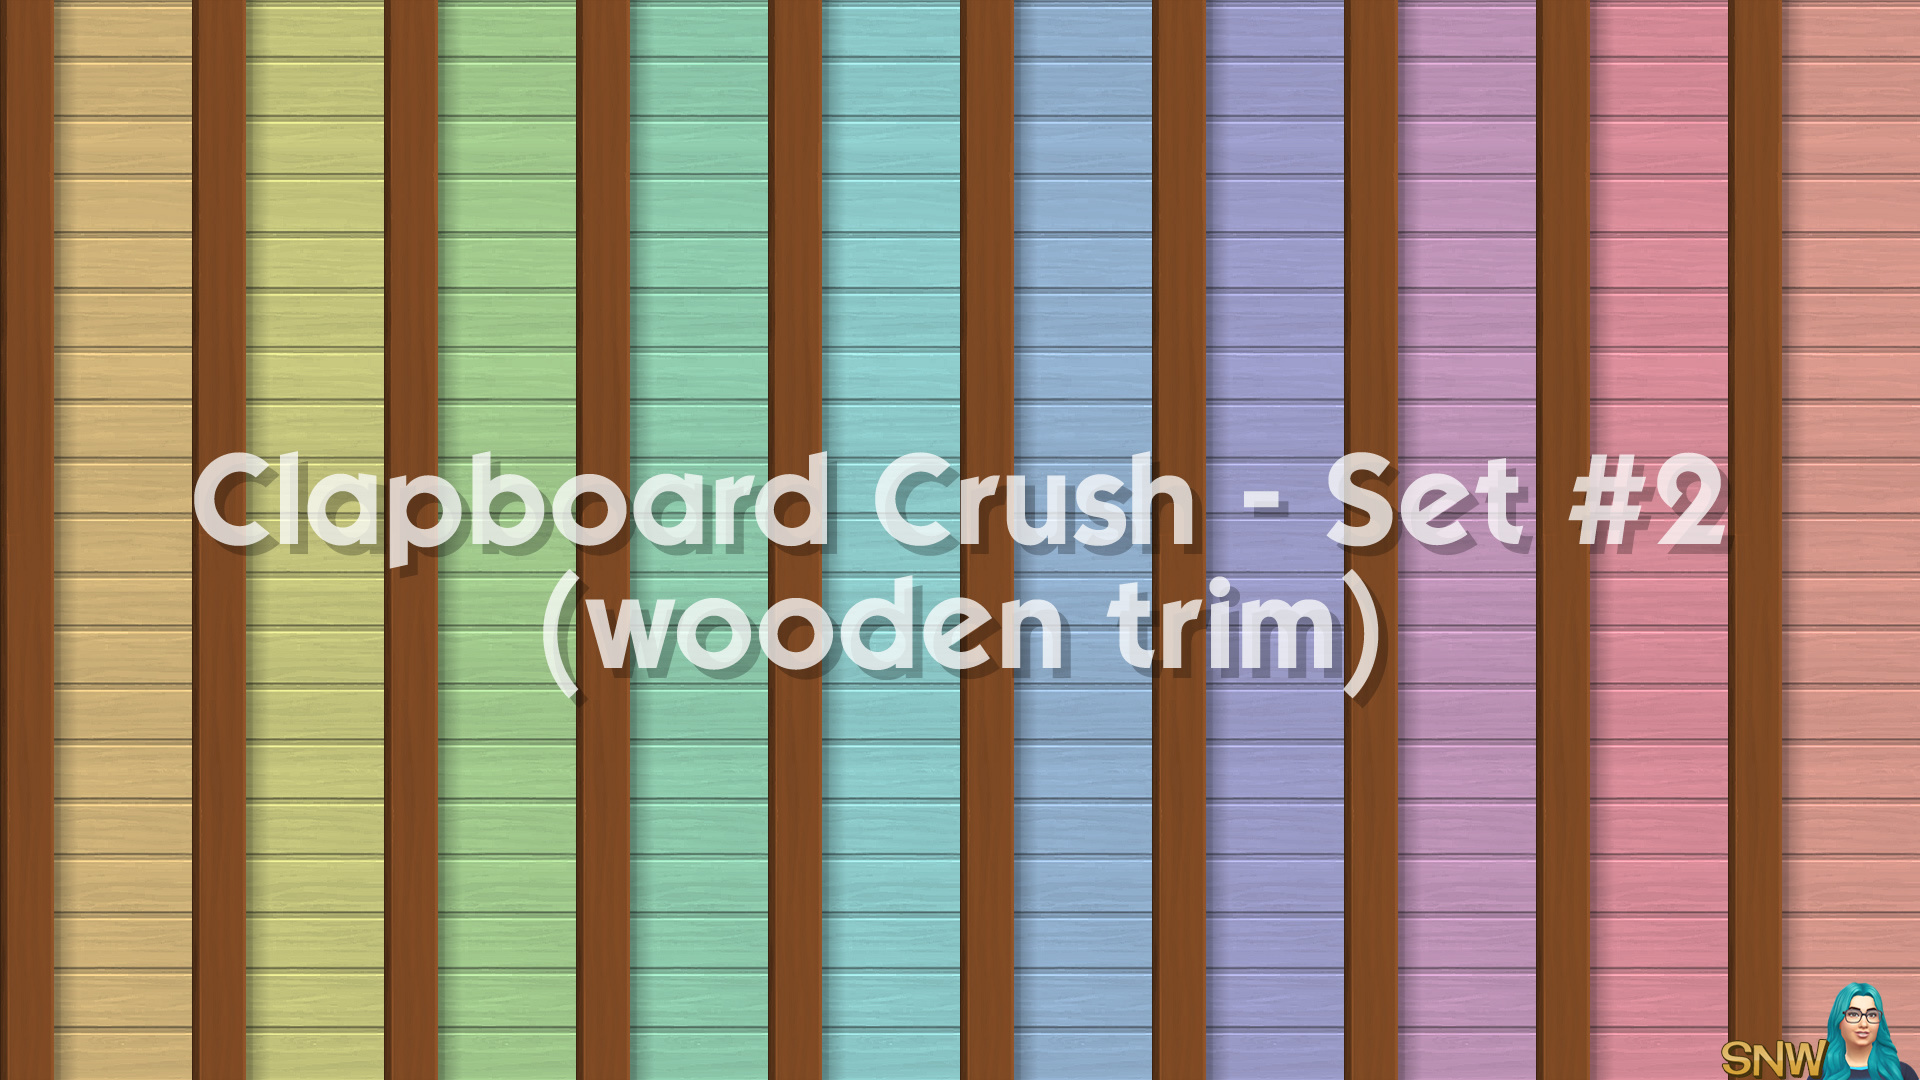 Clapboard Crush Siding Walls Set #2 (with Wooden Corner Trim)